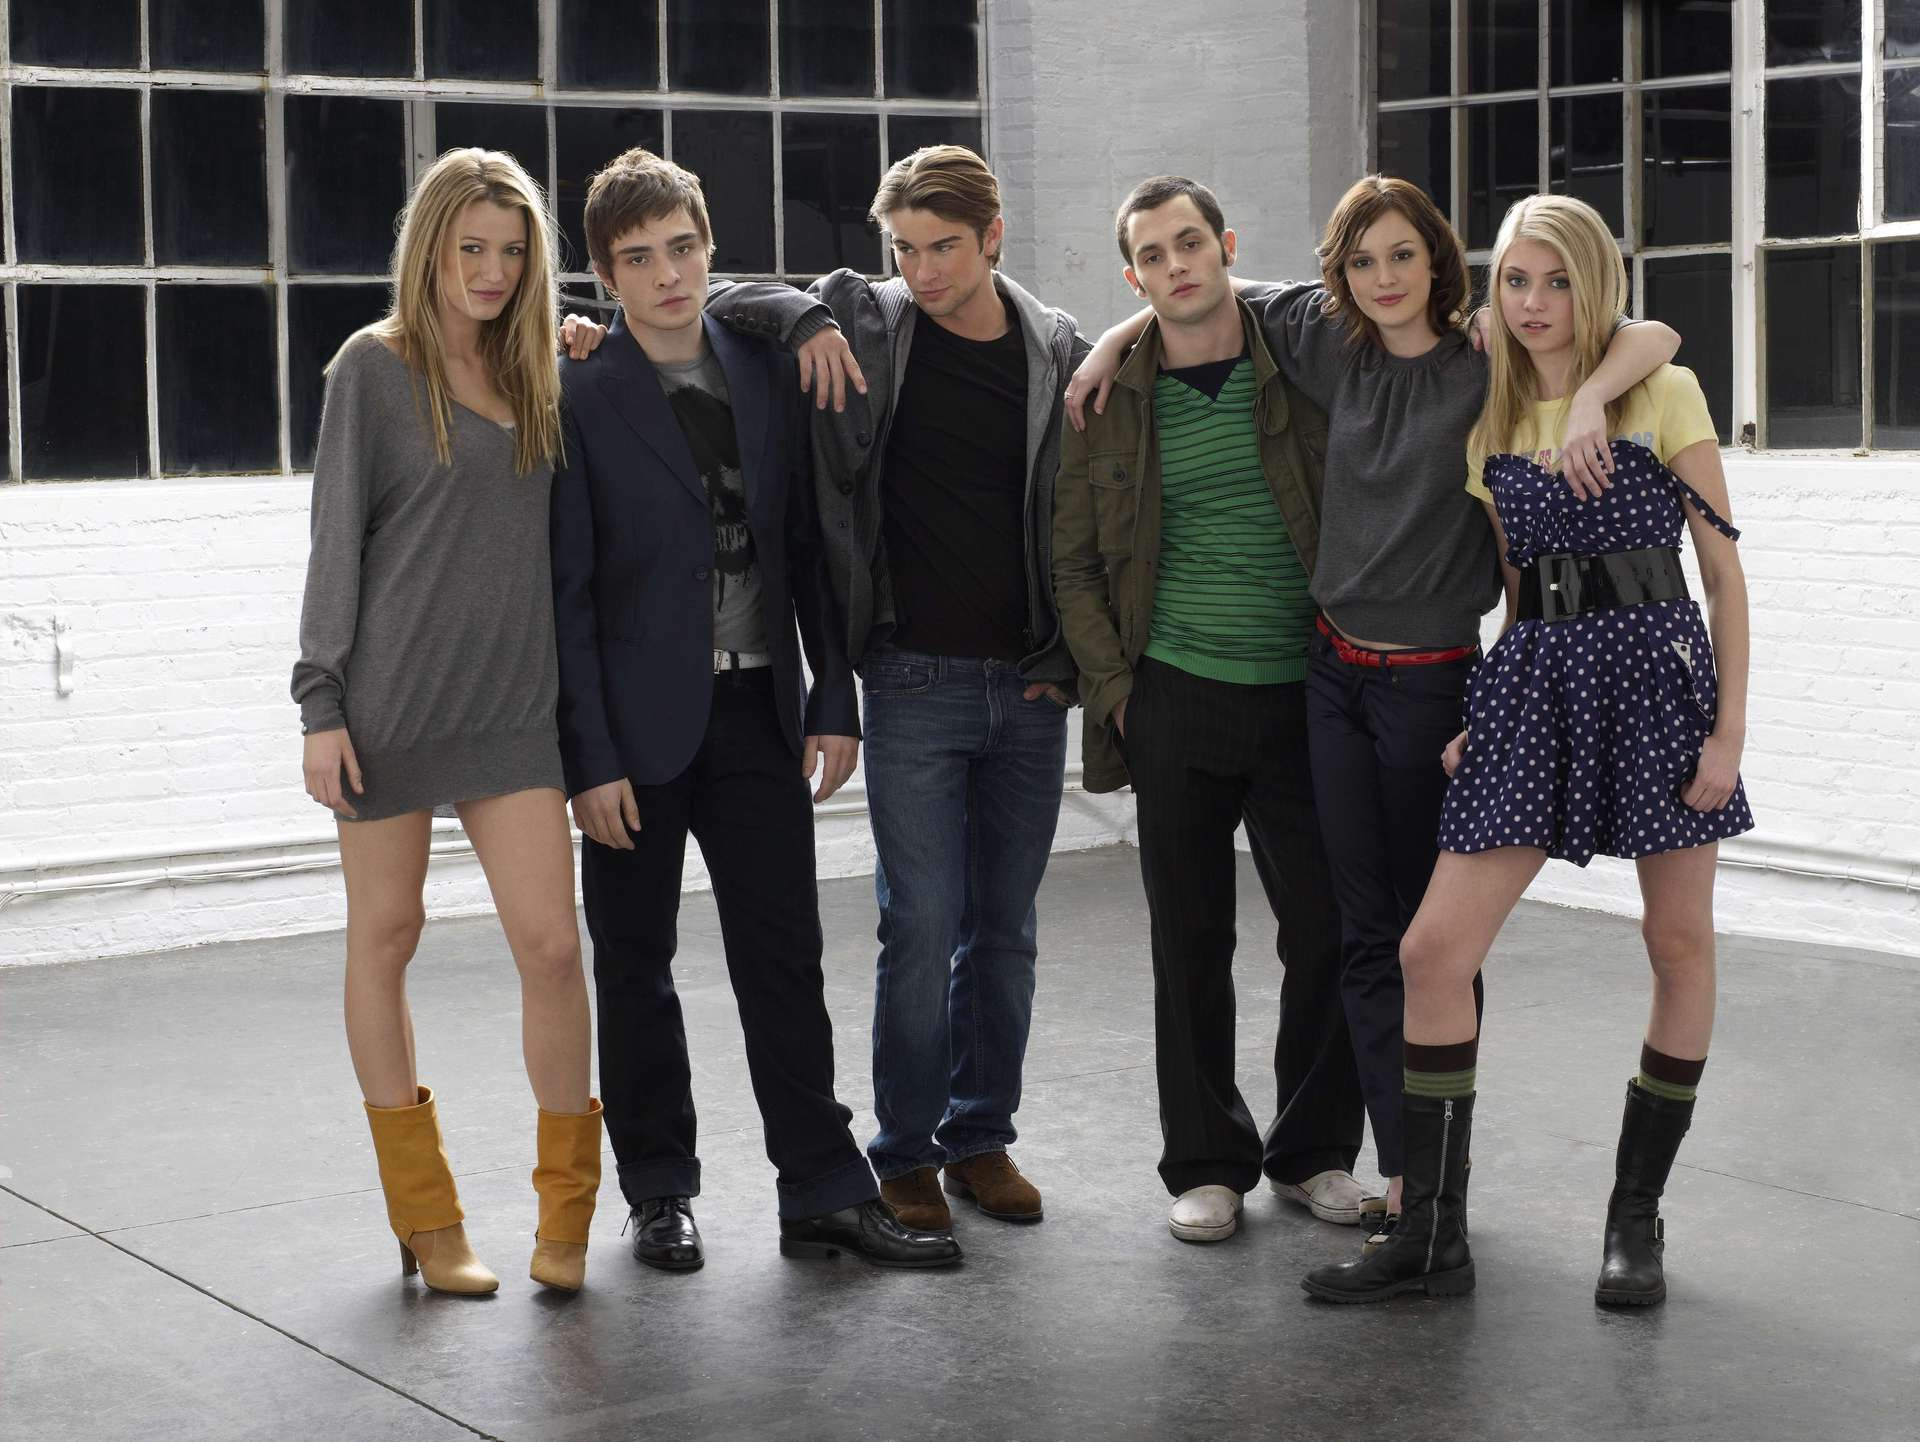 Top HD Gossip Girl Season 1 Wallpaper | TV HD | 97.53 KB